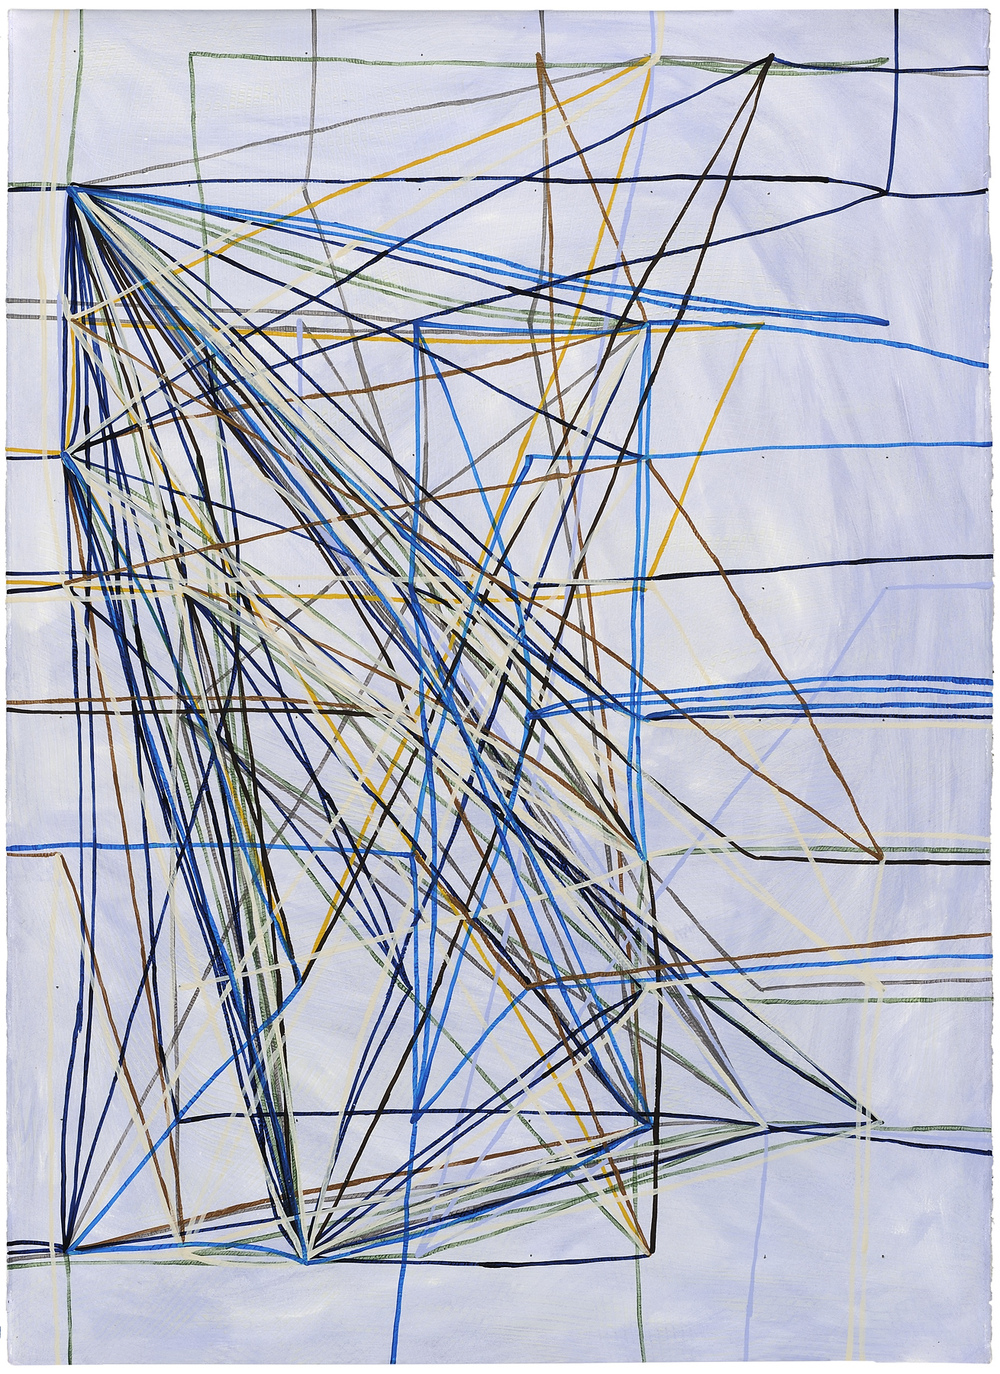 RFJP Chicago Metro ROY lines, 2014, acrylic and phosphorescent acrylic on paper, 41 x 29 inches